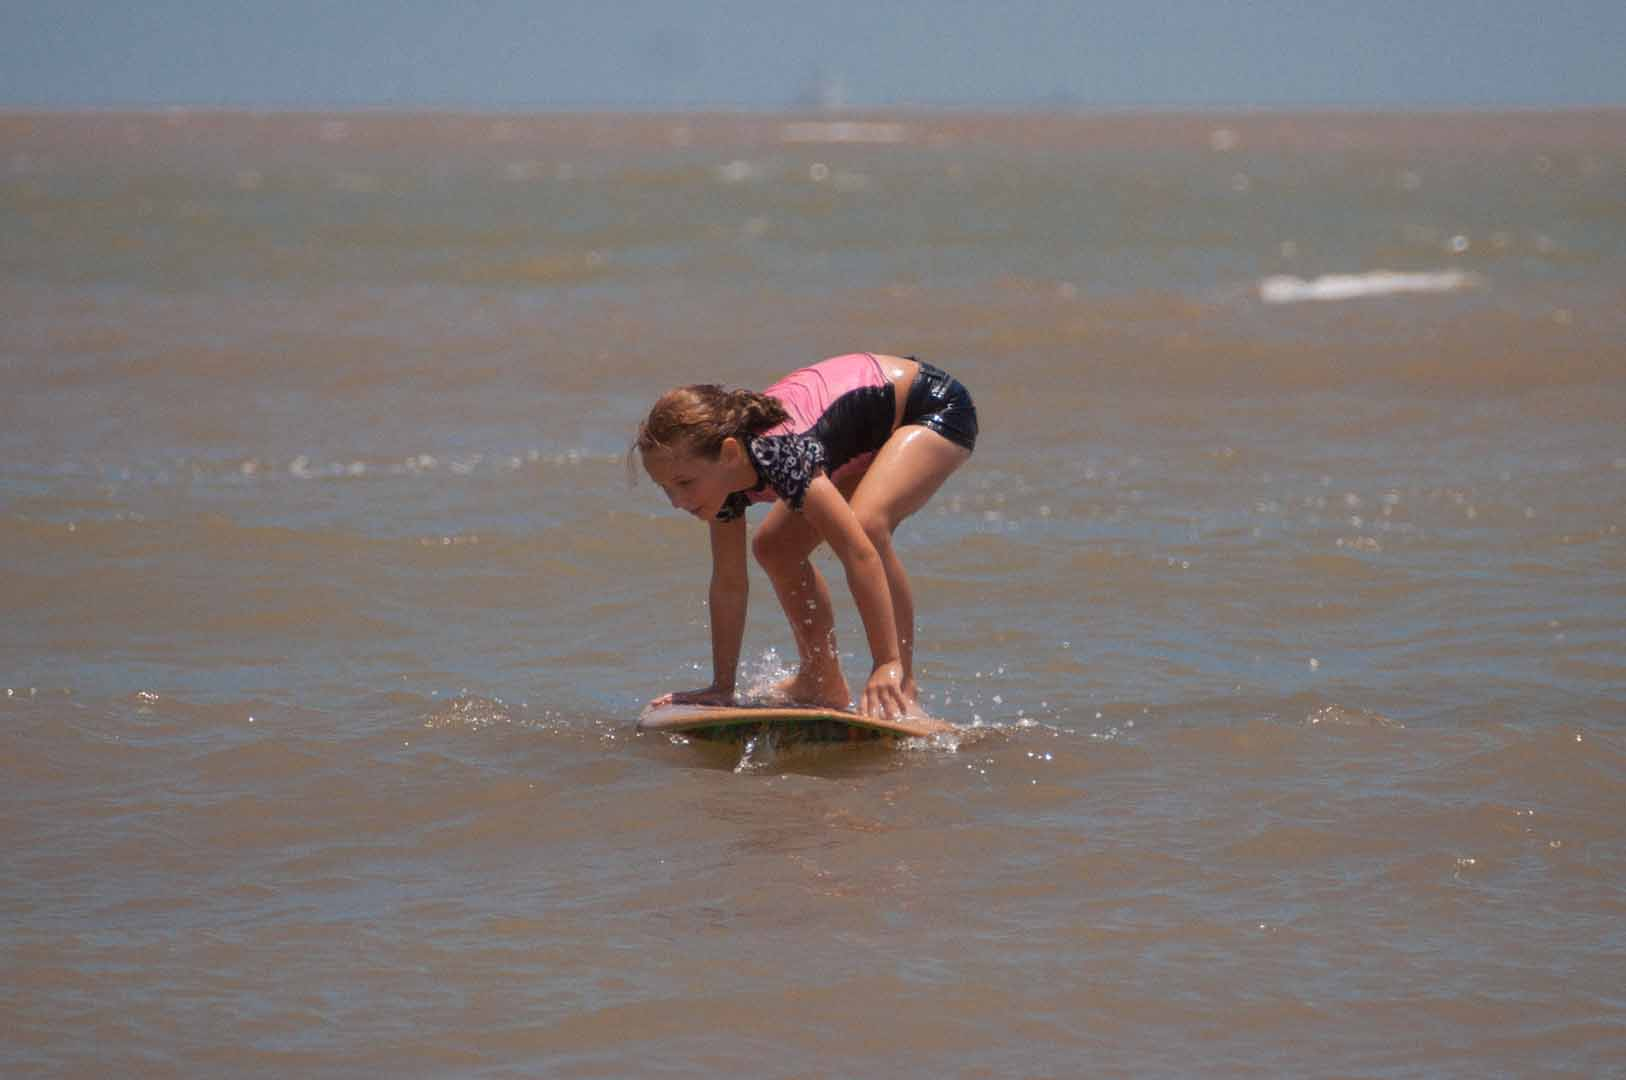 SurfsideLateJune_20150627_418